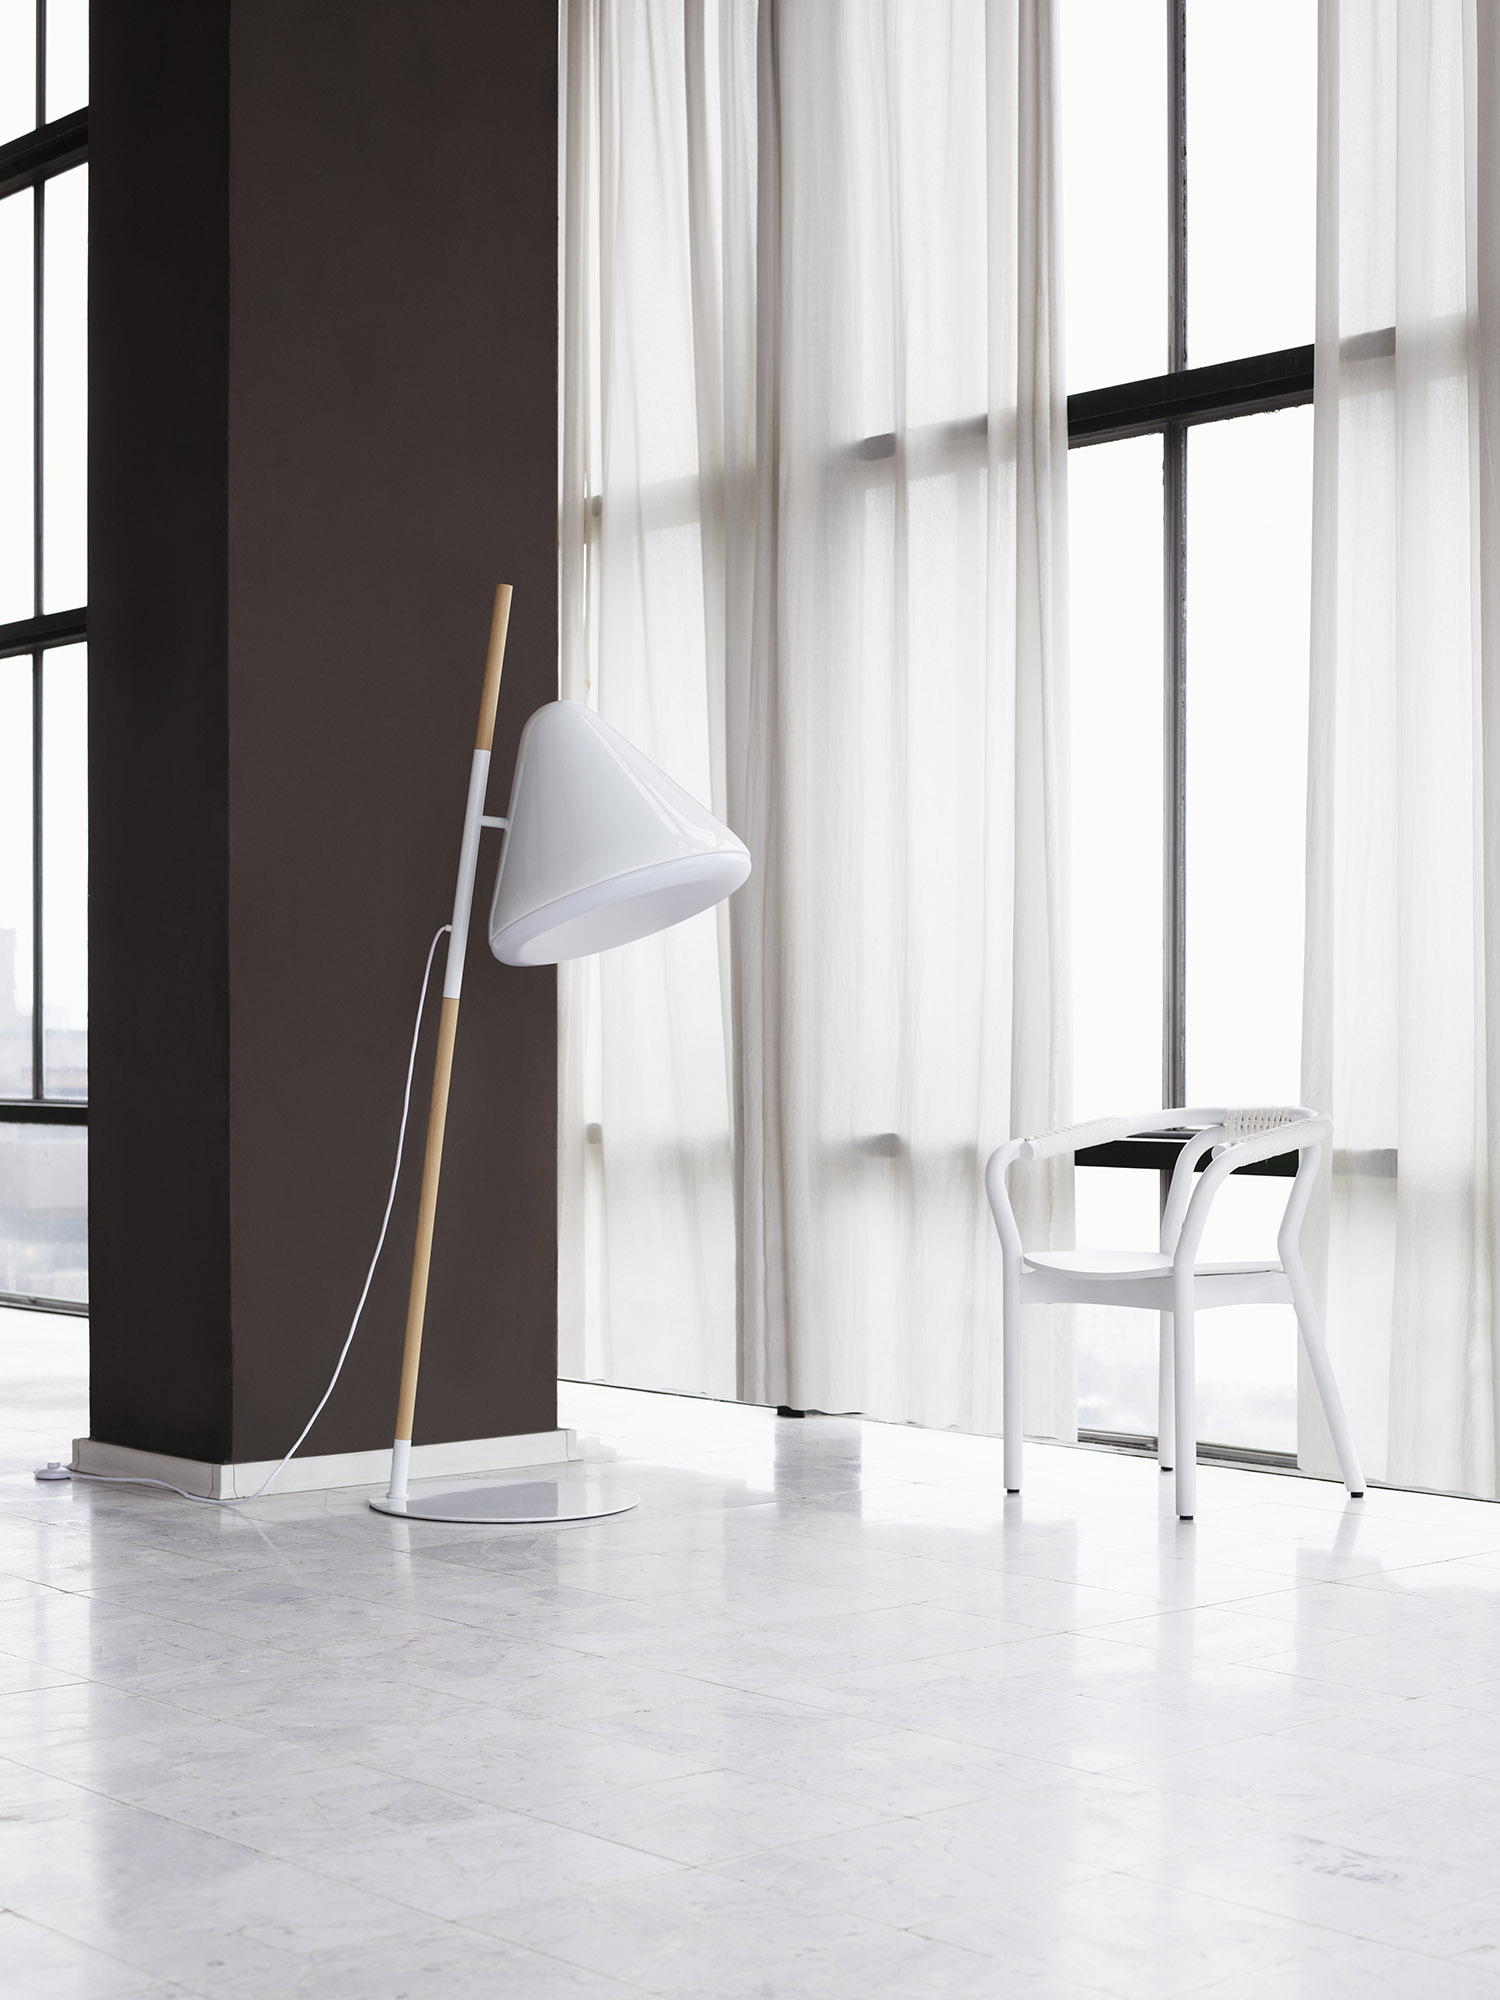 Hello Floor Lamp (2012) Jonas Wagell Design & Architecture